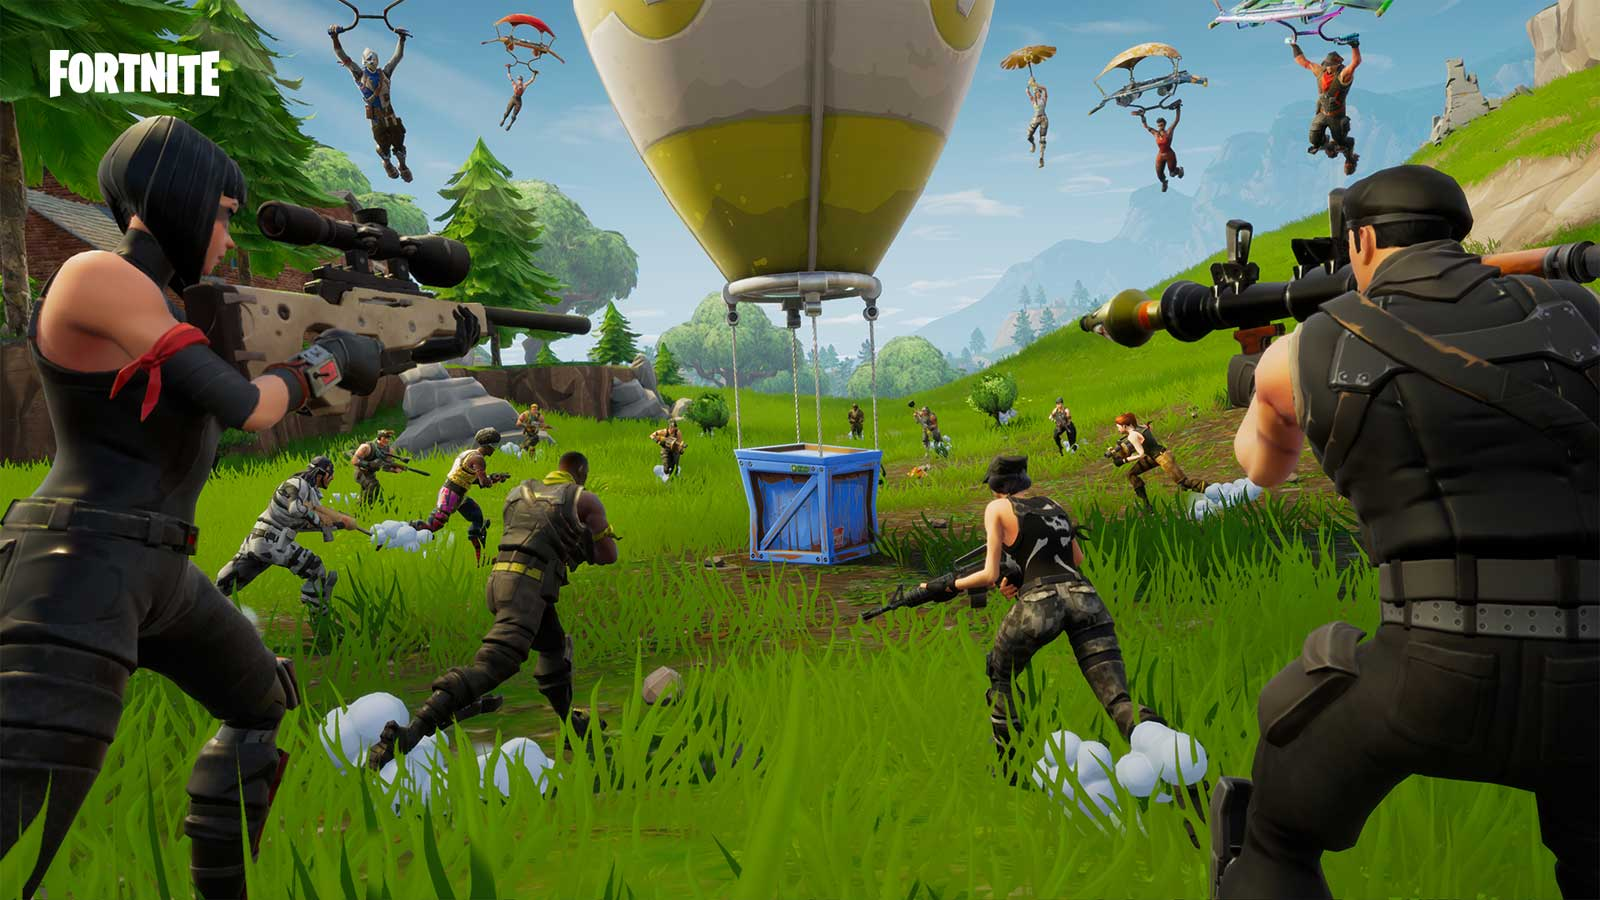 photo image The next big 'Fortnite' eSports event is an $8 million, 8-week tourney